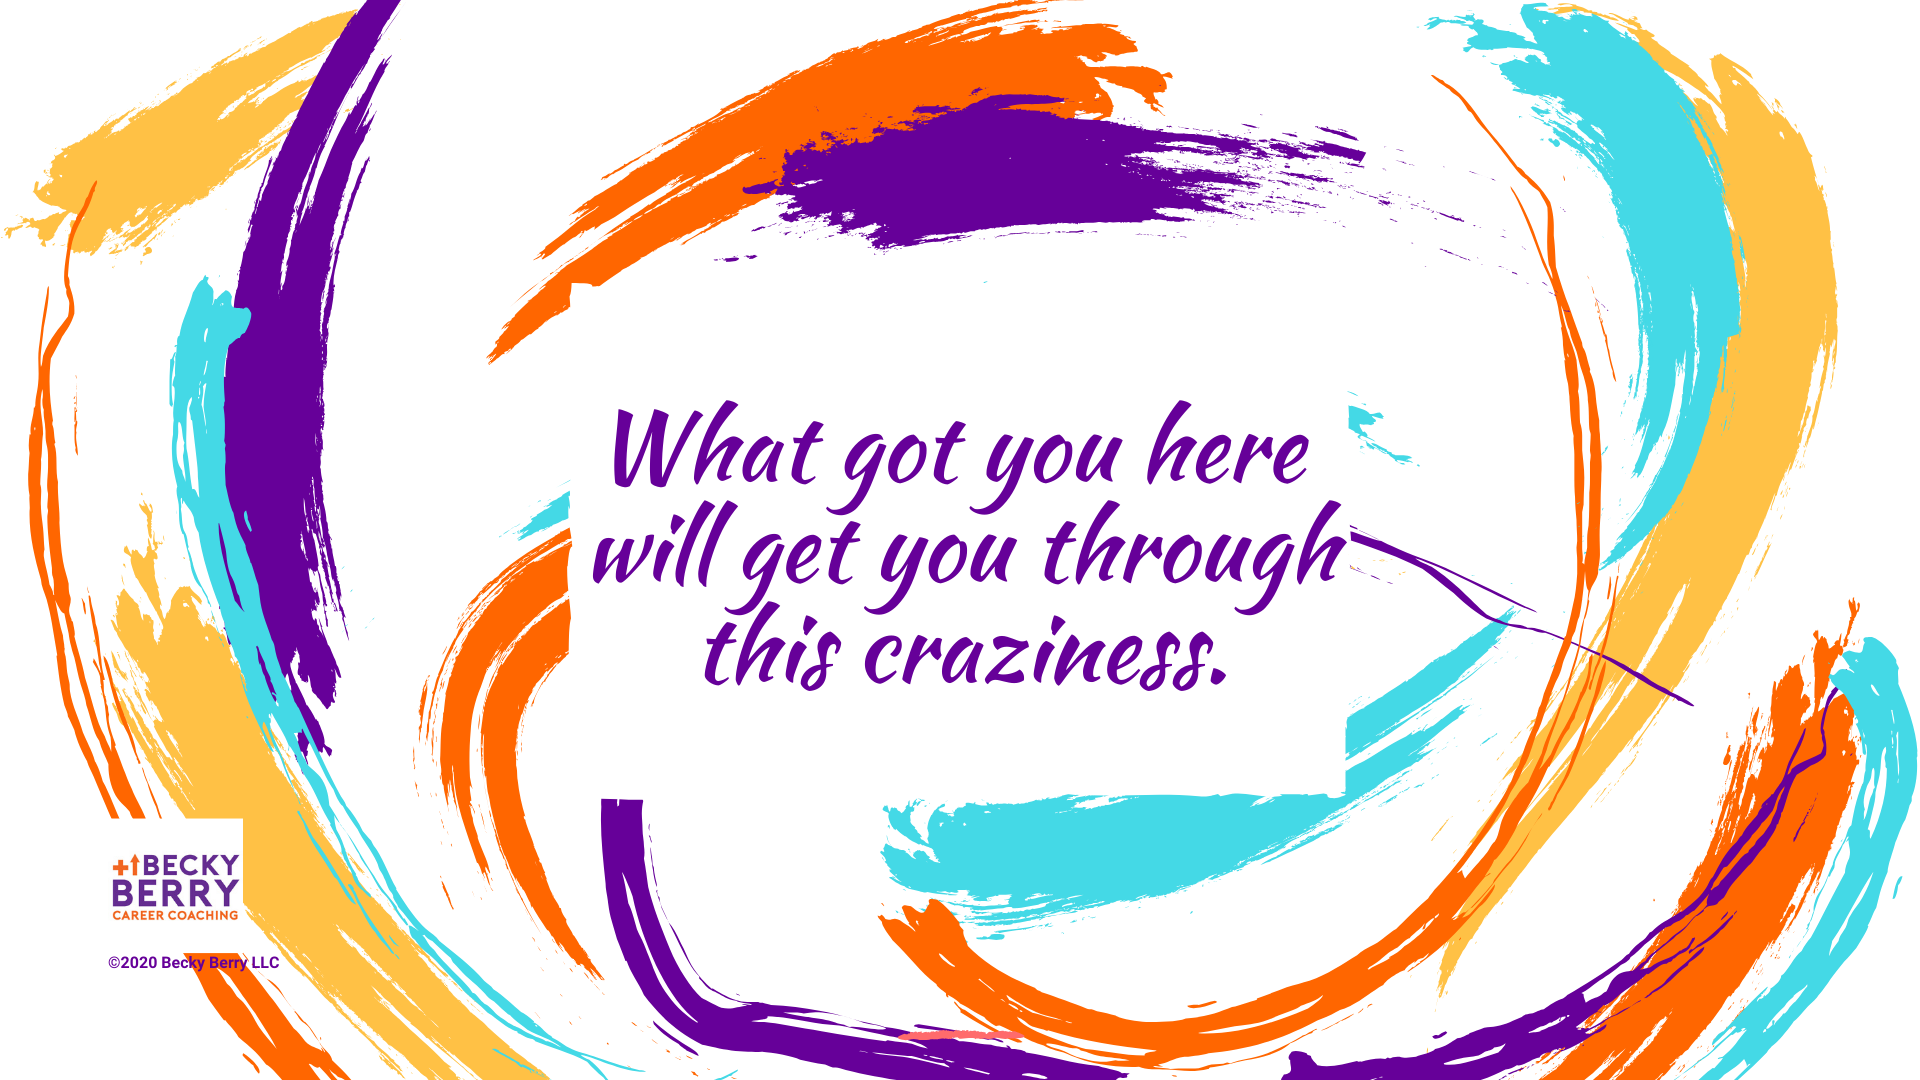 What got you here will get you through this craziness.